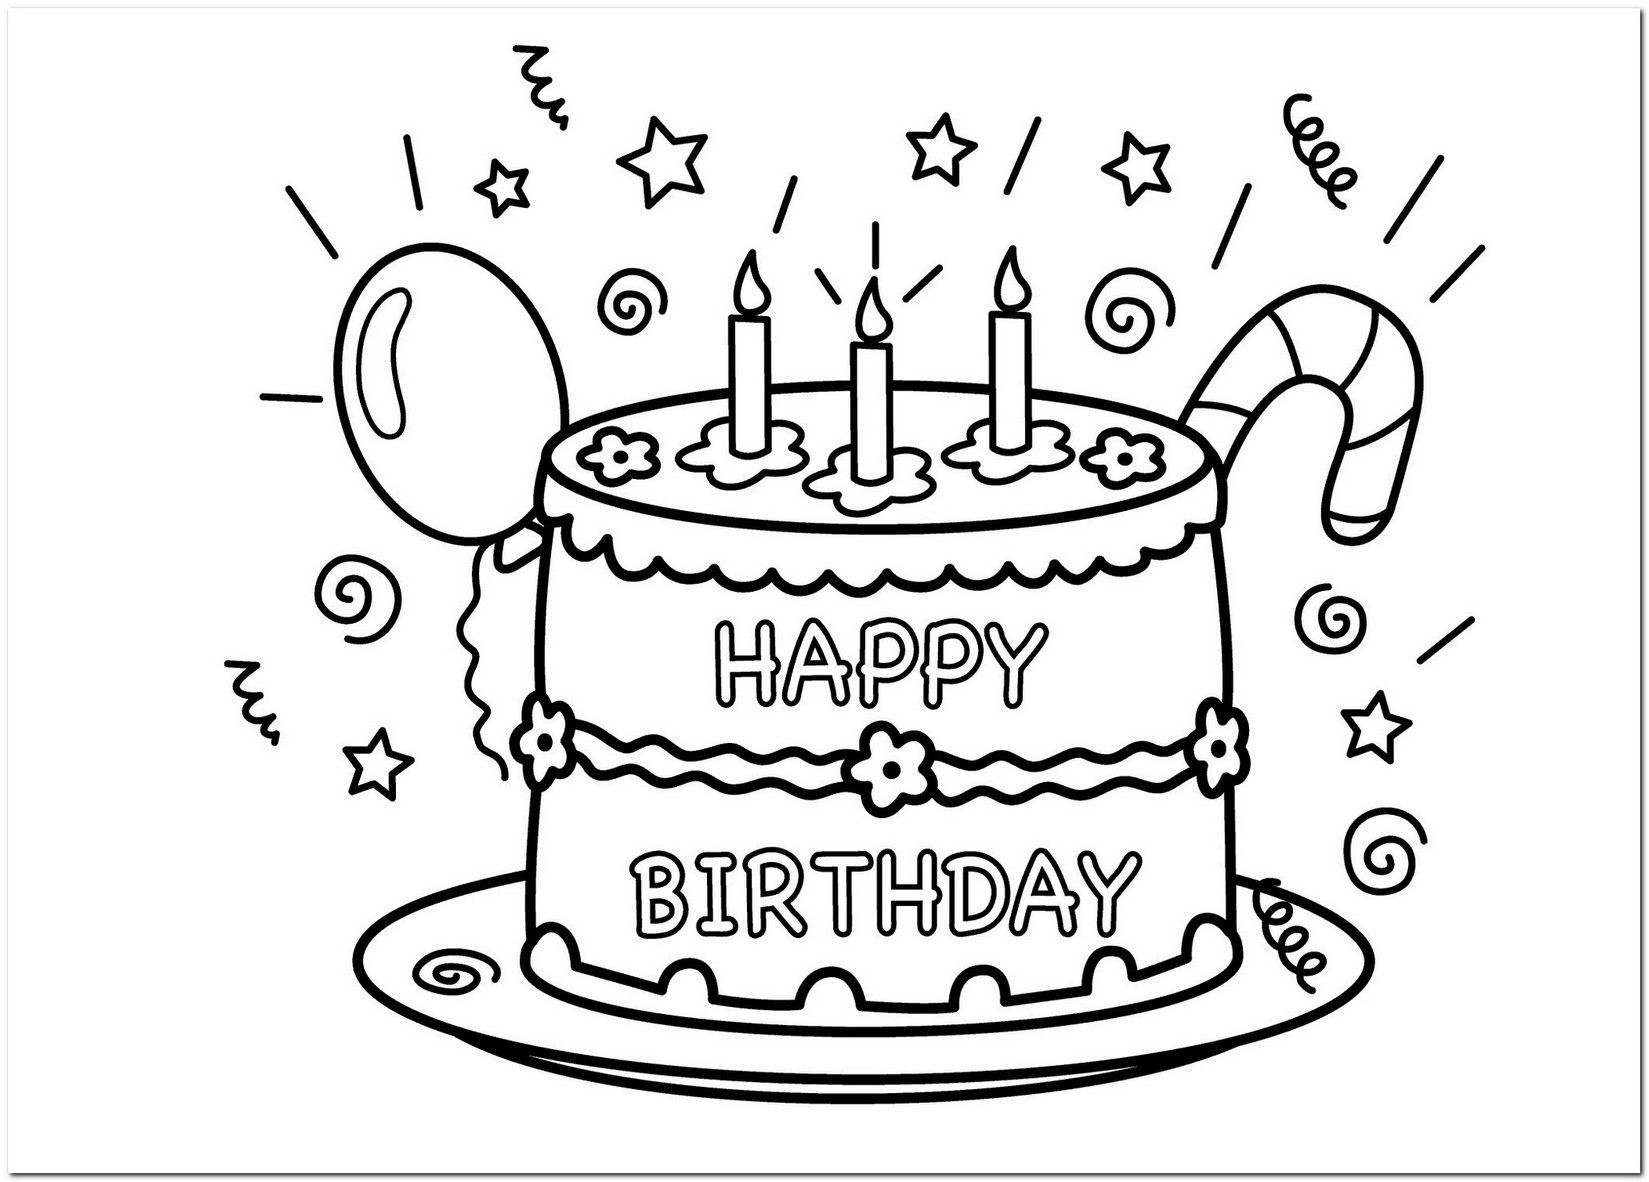 Coloring Page Birthday Cake Full Happy Birthday Coloring Pages Birthday Coloring Pages Happy Birthday Printable